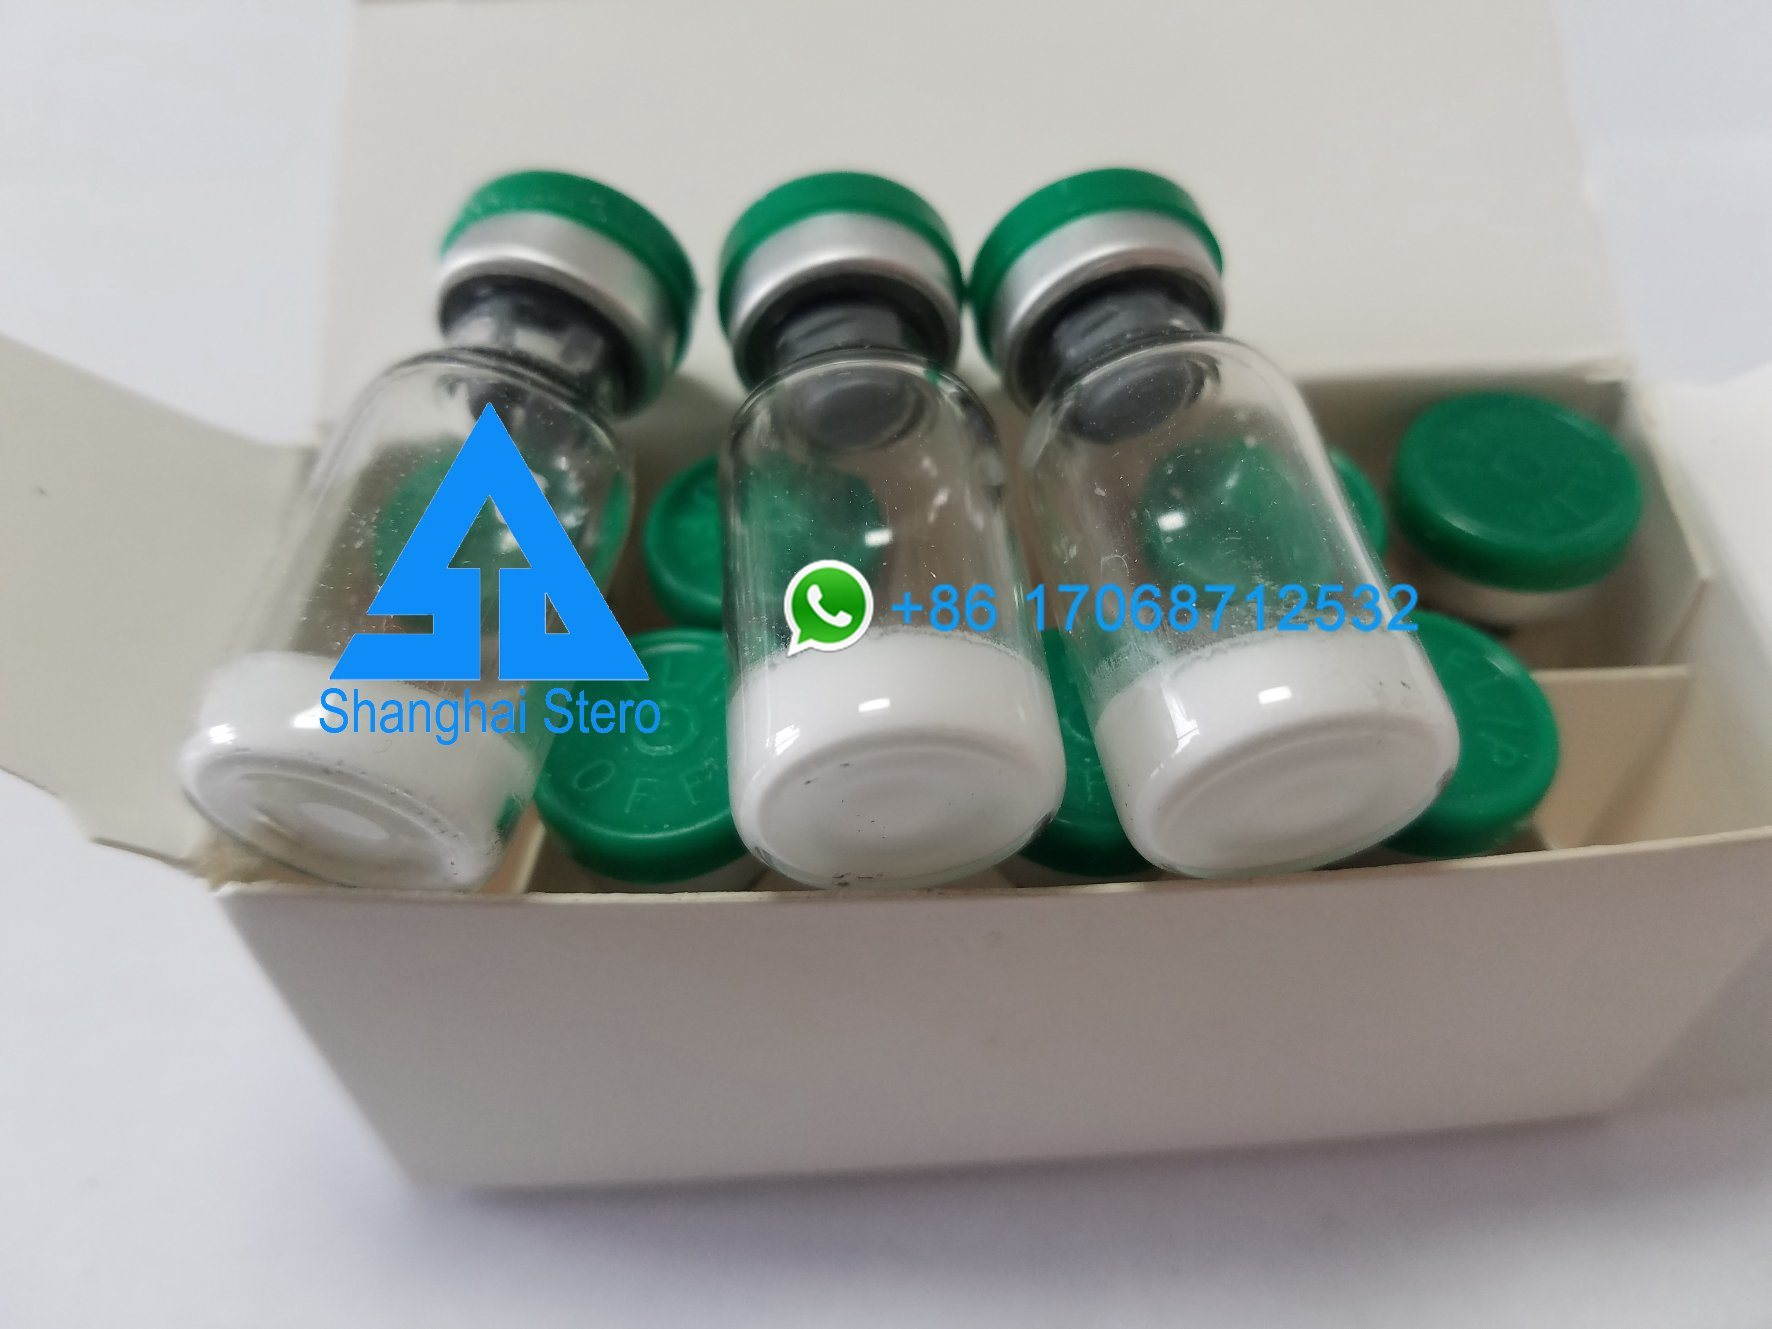 Hot Sale Polypeptides Ghrp-6 10mg/Vial Pharmaceutical Peptides Weight Loss Ghrp-6